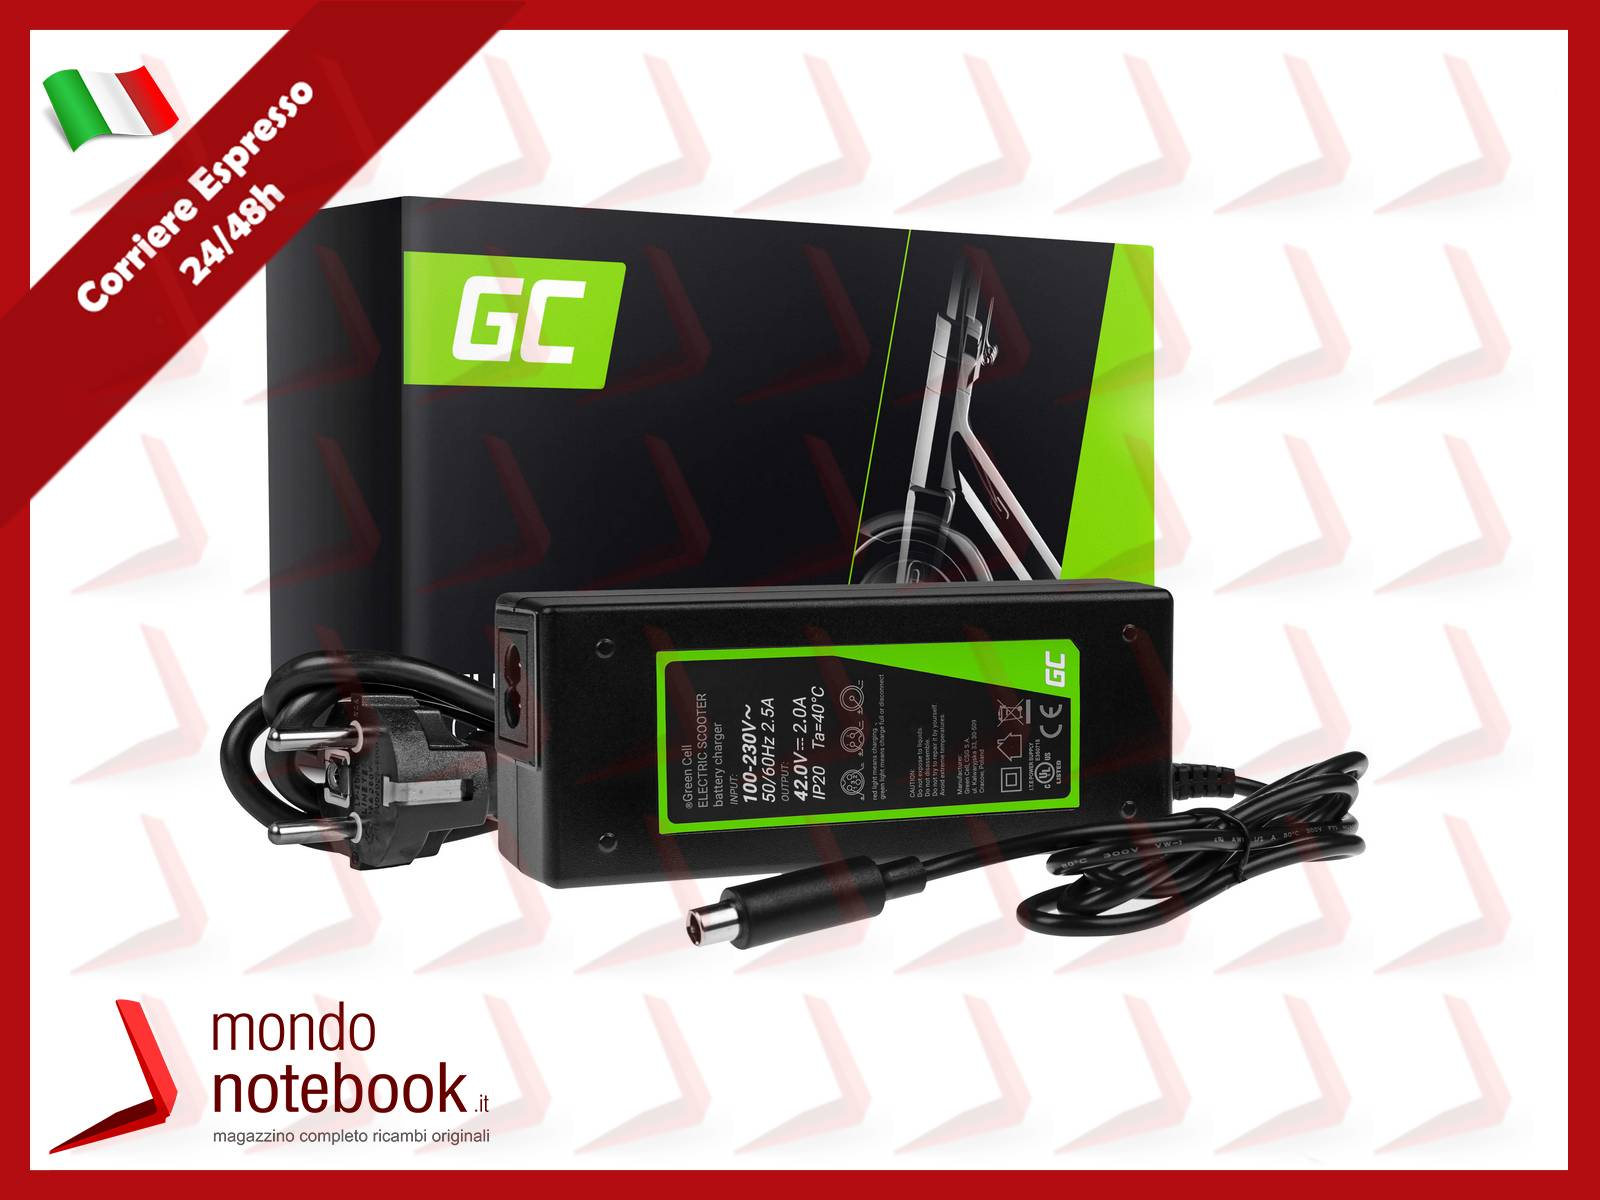 green-cell-pro-charger-ac-adapter-per-msi-gt60-gt70-gt680-gt683-asus-rog-g75-g75v-g75vw-g750jm-g750js-19v-95a-180w